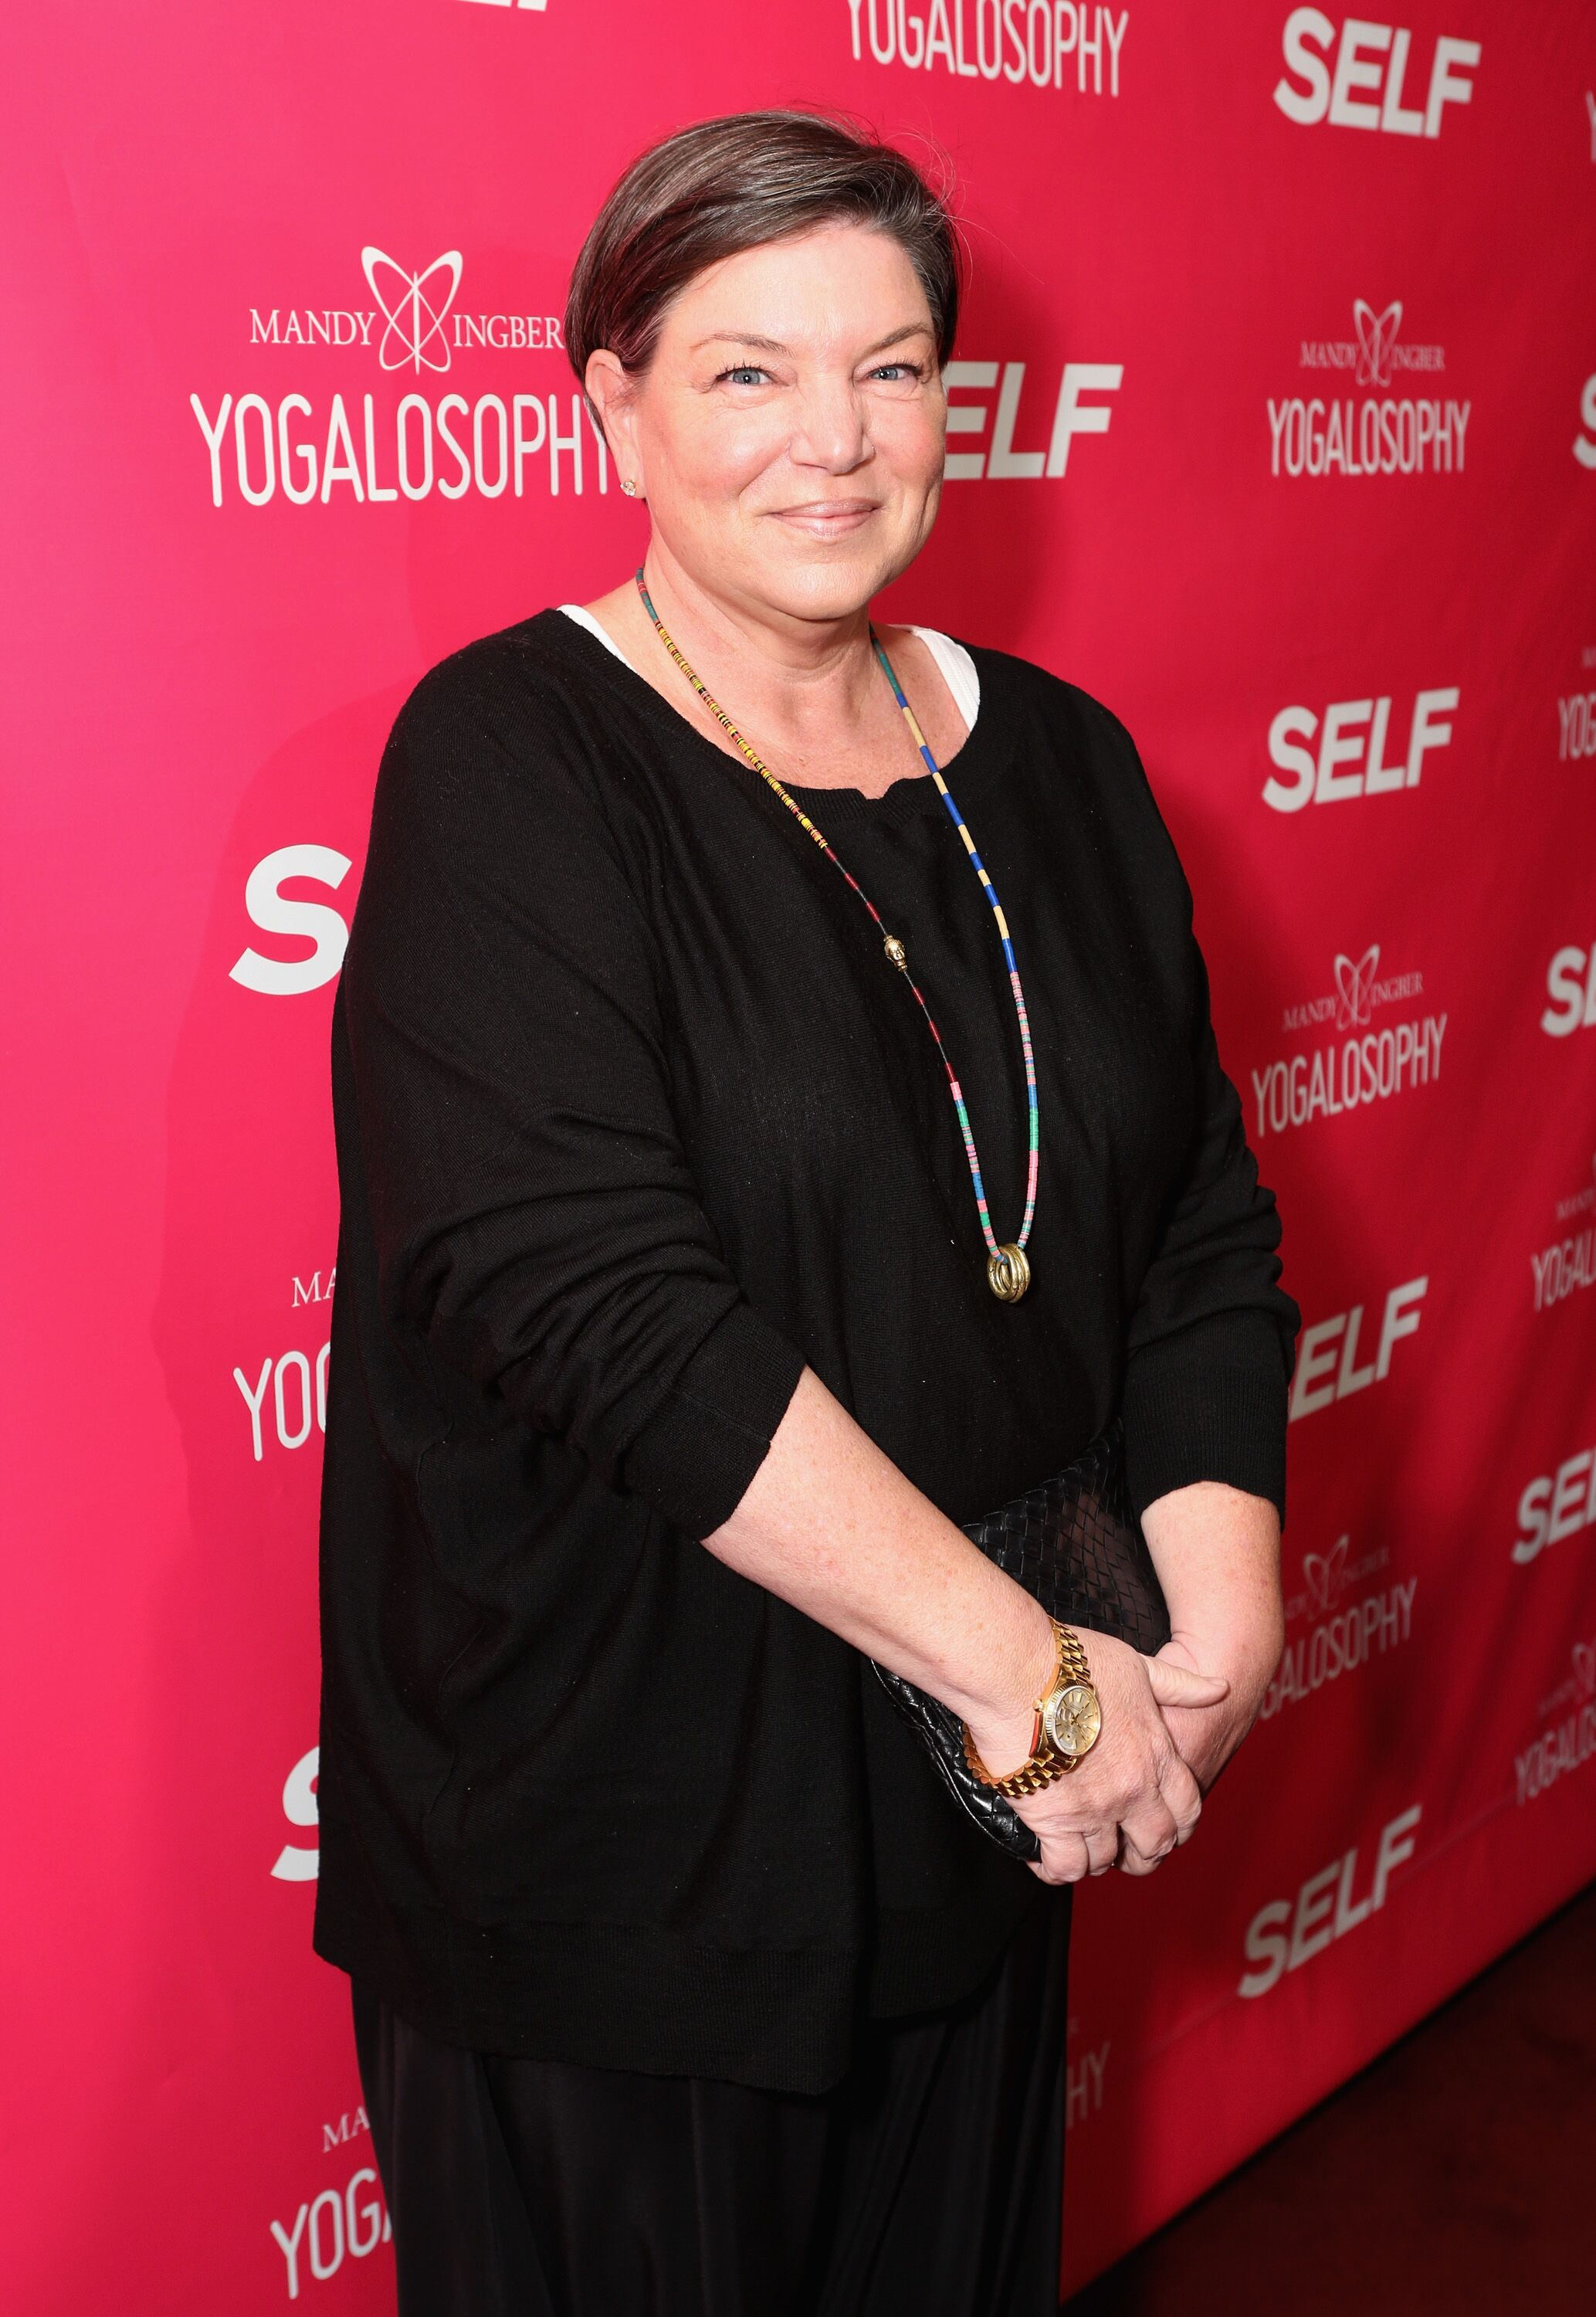 """Actress Mindy Cohn attends SELF Magazine and Jennifer Aniston's celebration of Mandy Ingber's new book """"Yogalosophy: 28 Days to the Ultimate Mind-Body Makeover"""" (Seal Press) on April 30, 2013 